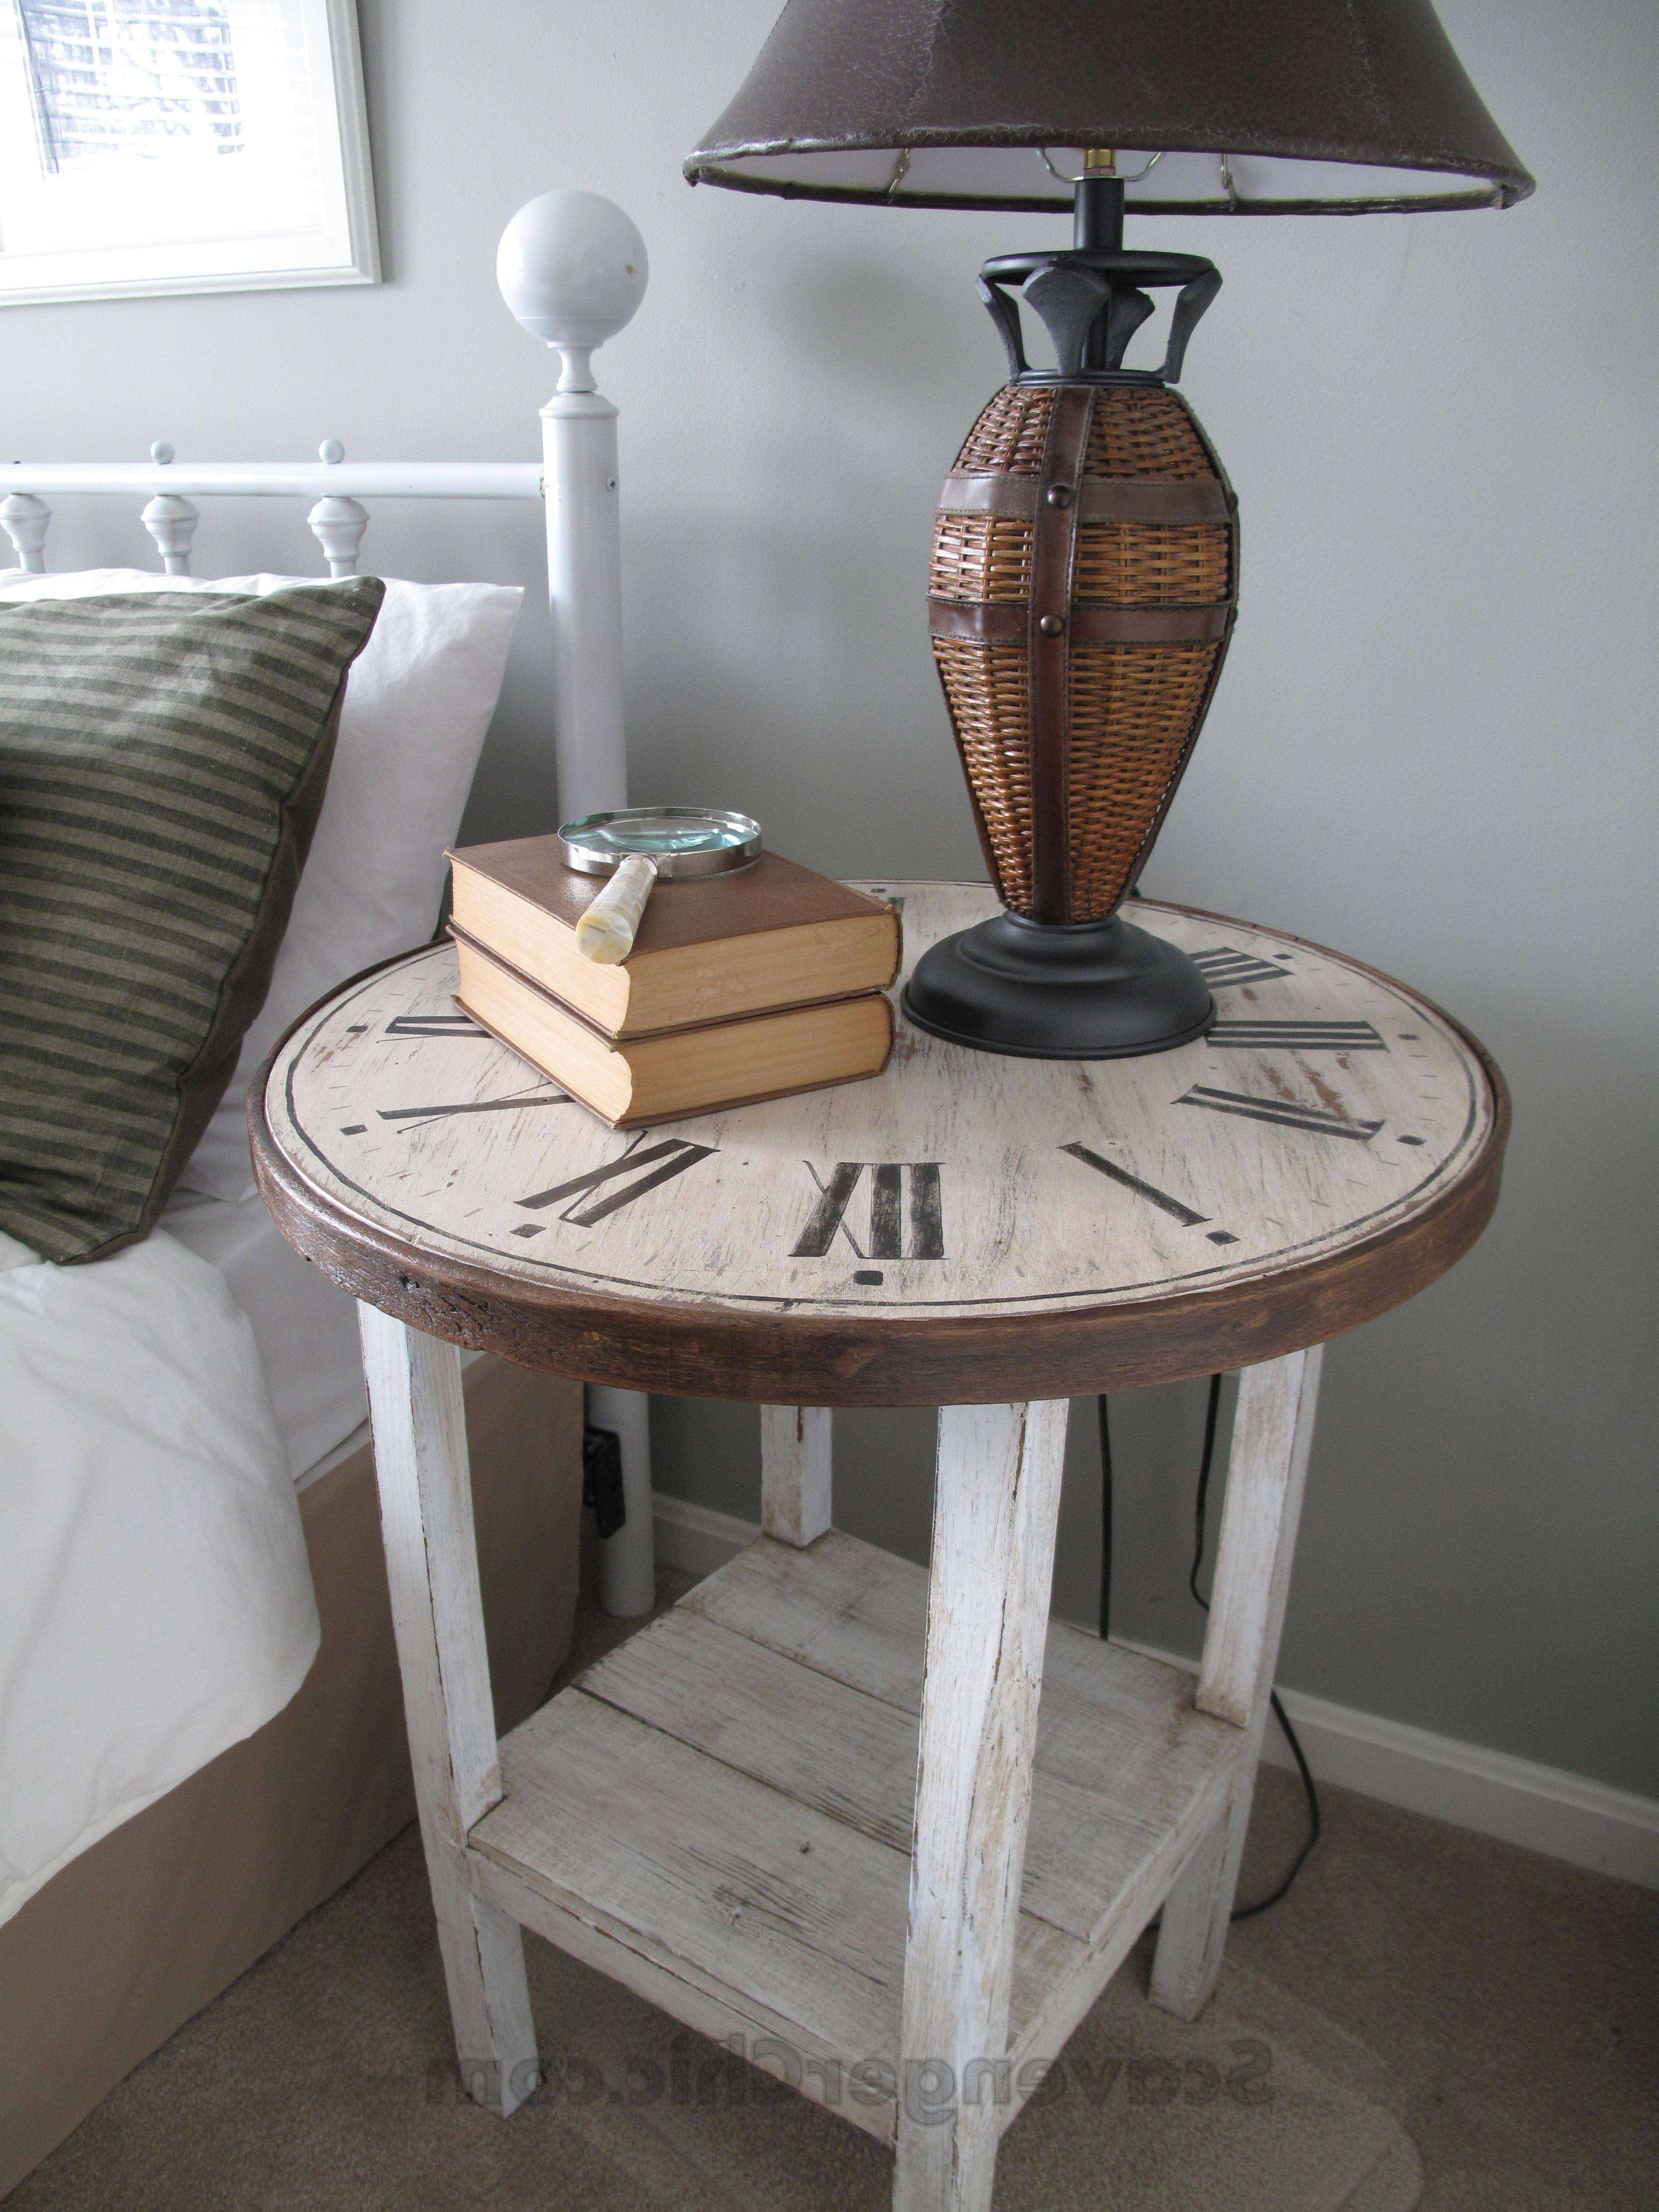 Clock Table From A Flea Market Find – Scavenger Chic Inside Fashionable Coffee Tables With Clock Top (View 5 of 20)